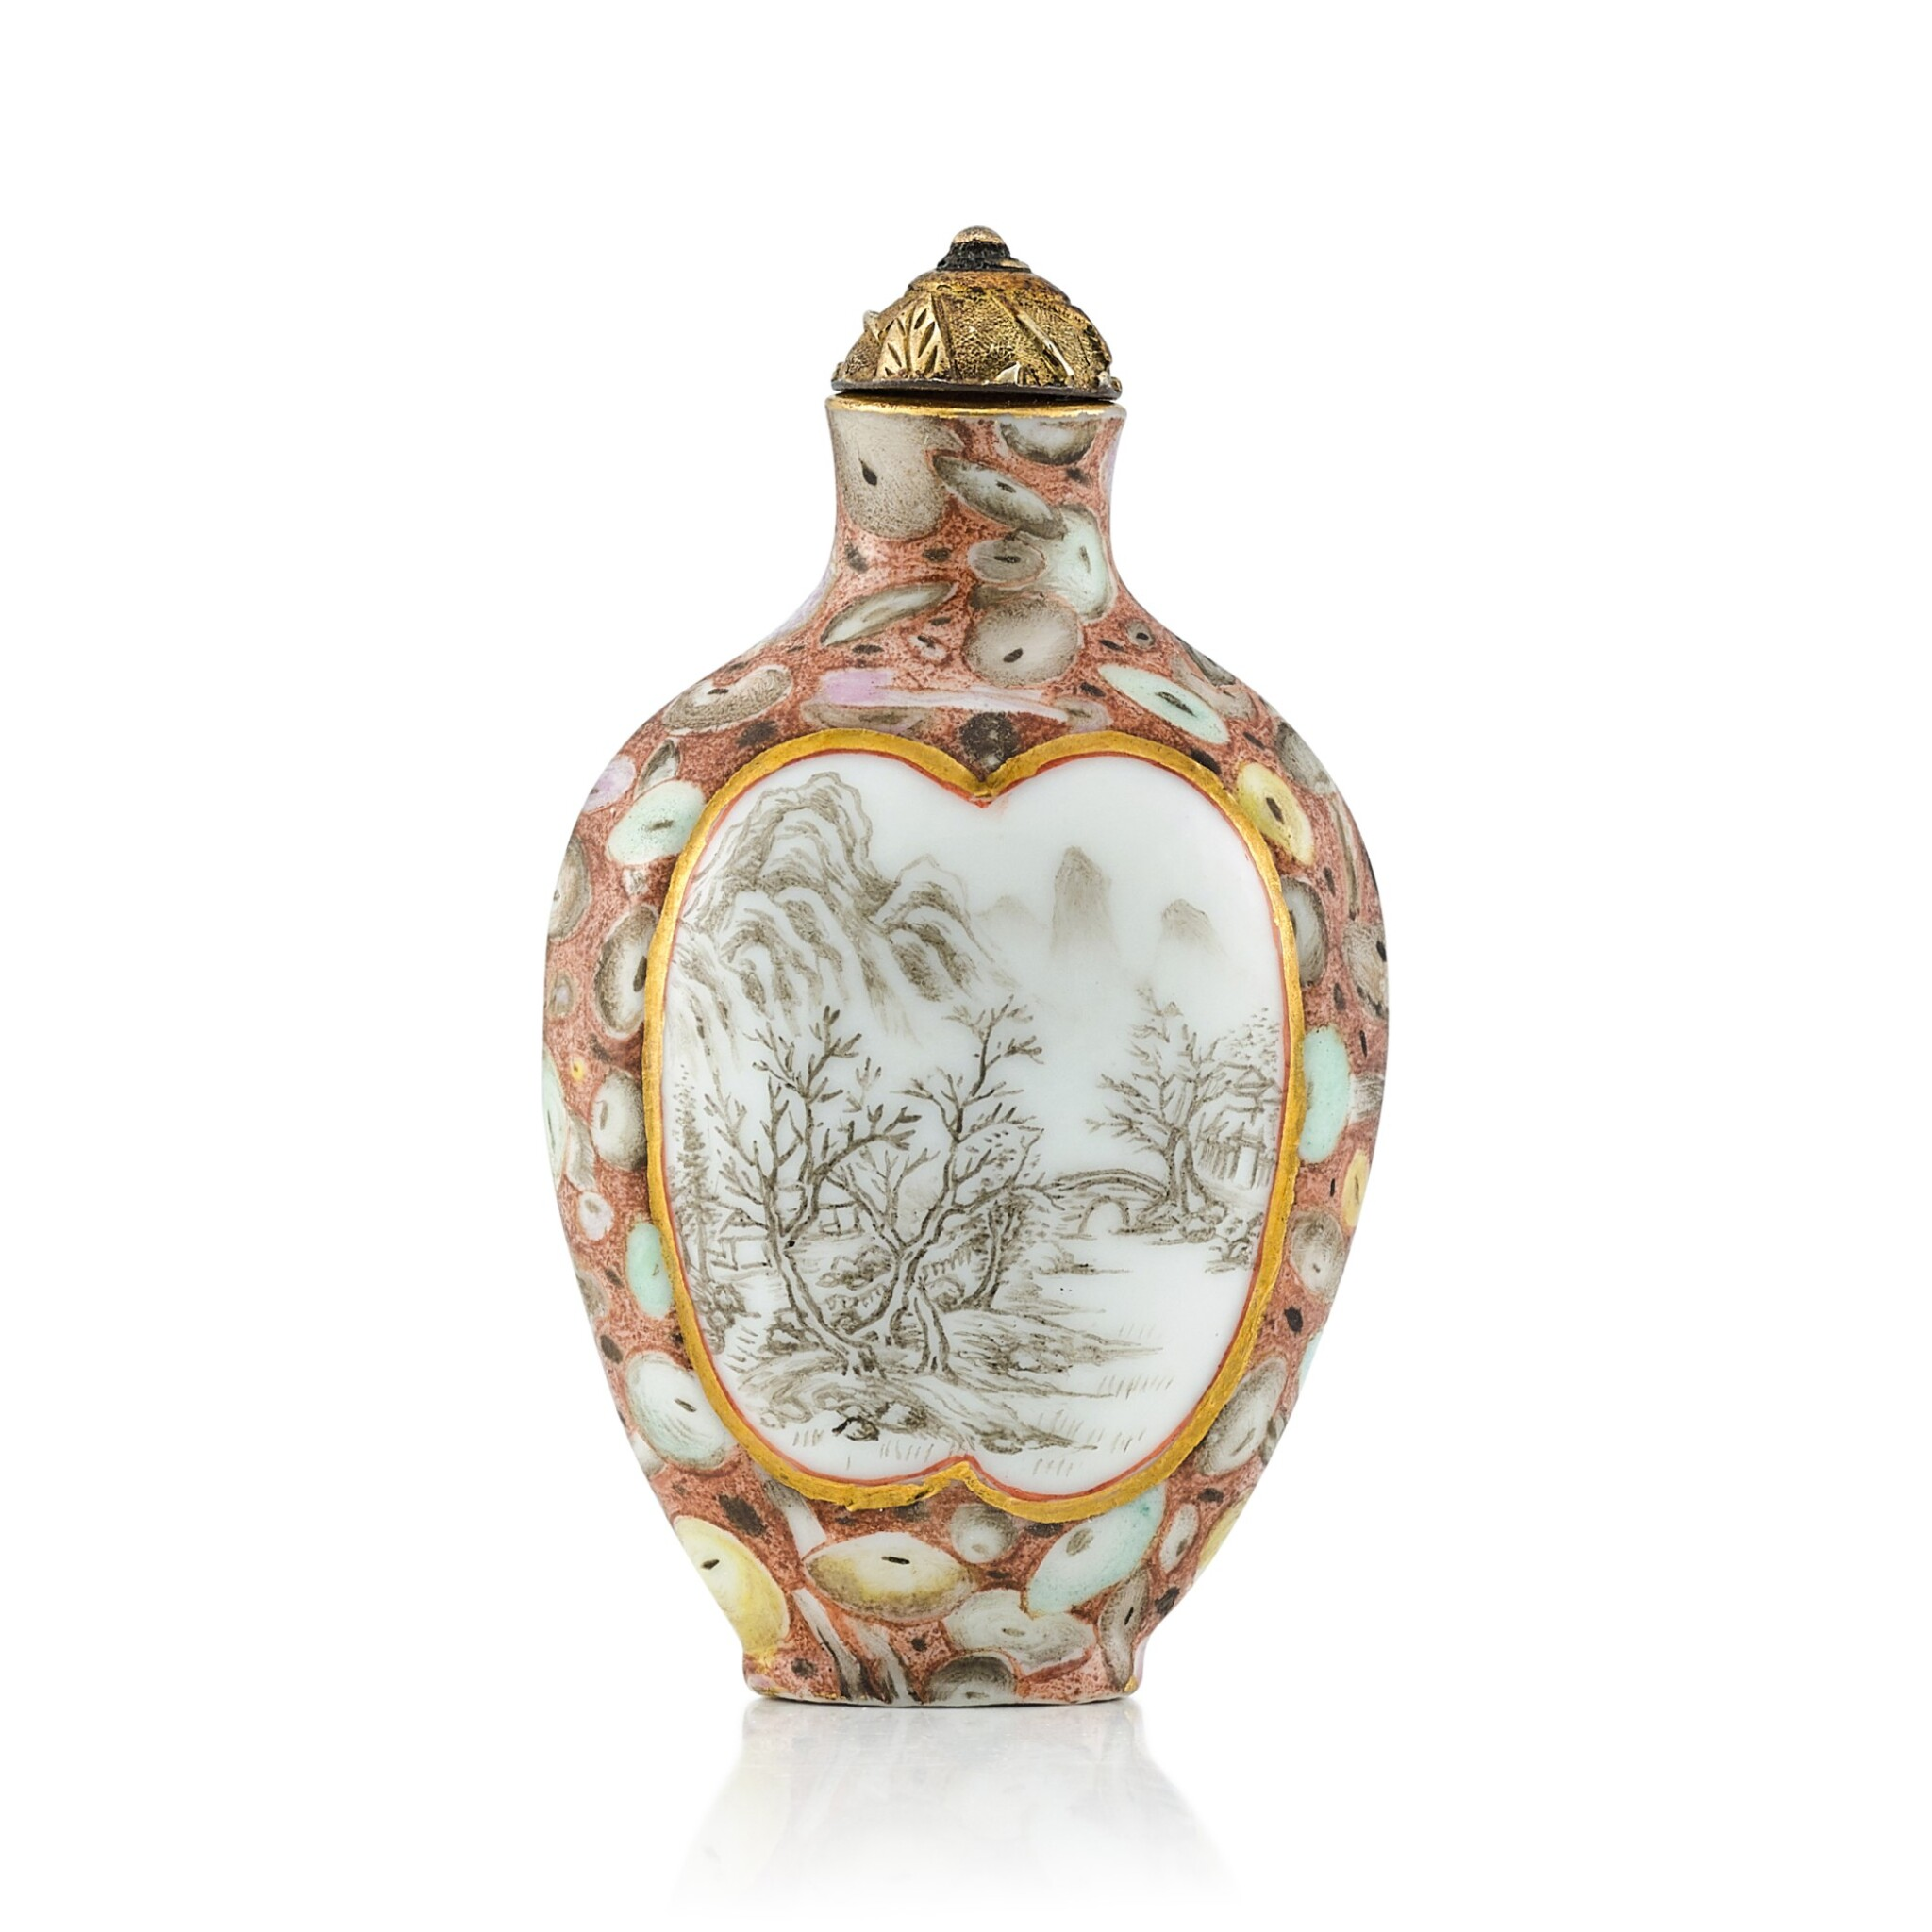 View full screen - View 1 of Lot 3028. An Inscribed Puddingstone-Imitation Porcelain Snuff Bottle Qing Dynasty, Qianlong - Jiaqing Period | 清乾隆至嘉慶 粉彩仿抱子石光開山水鼻煙壺.